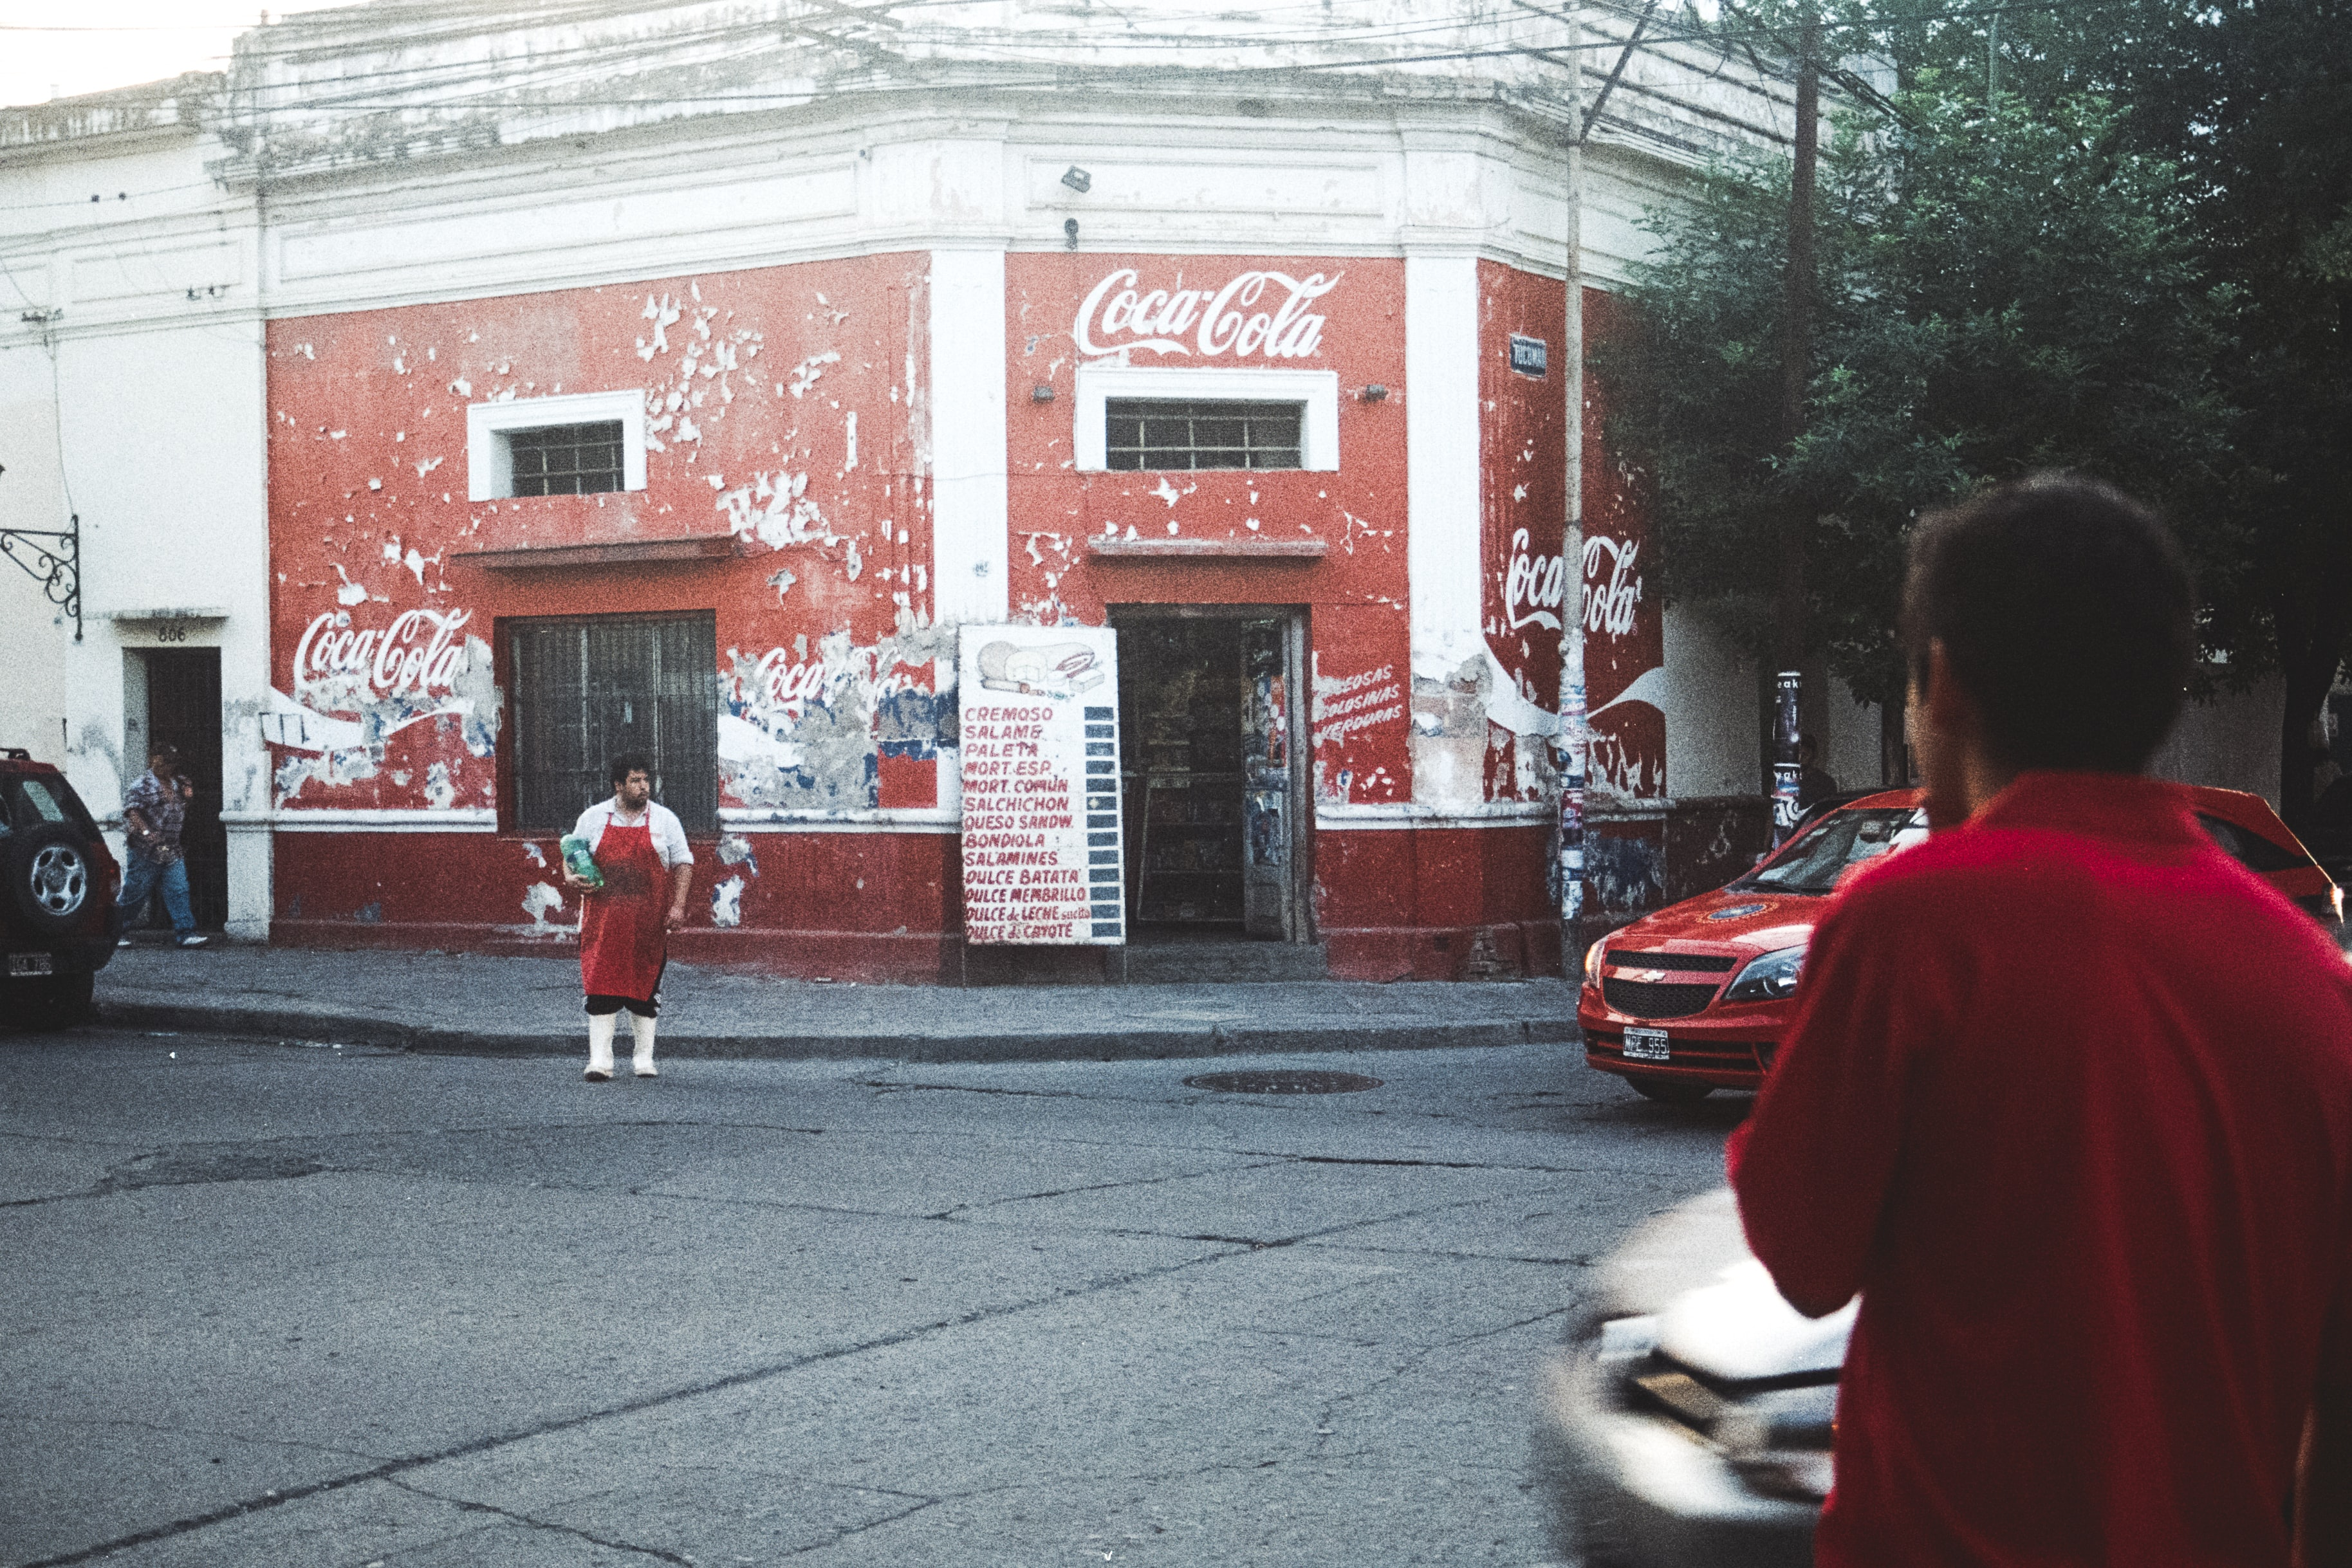 A person in a red apron crosses the street outside a red shop with Coca-Cola logos